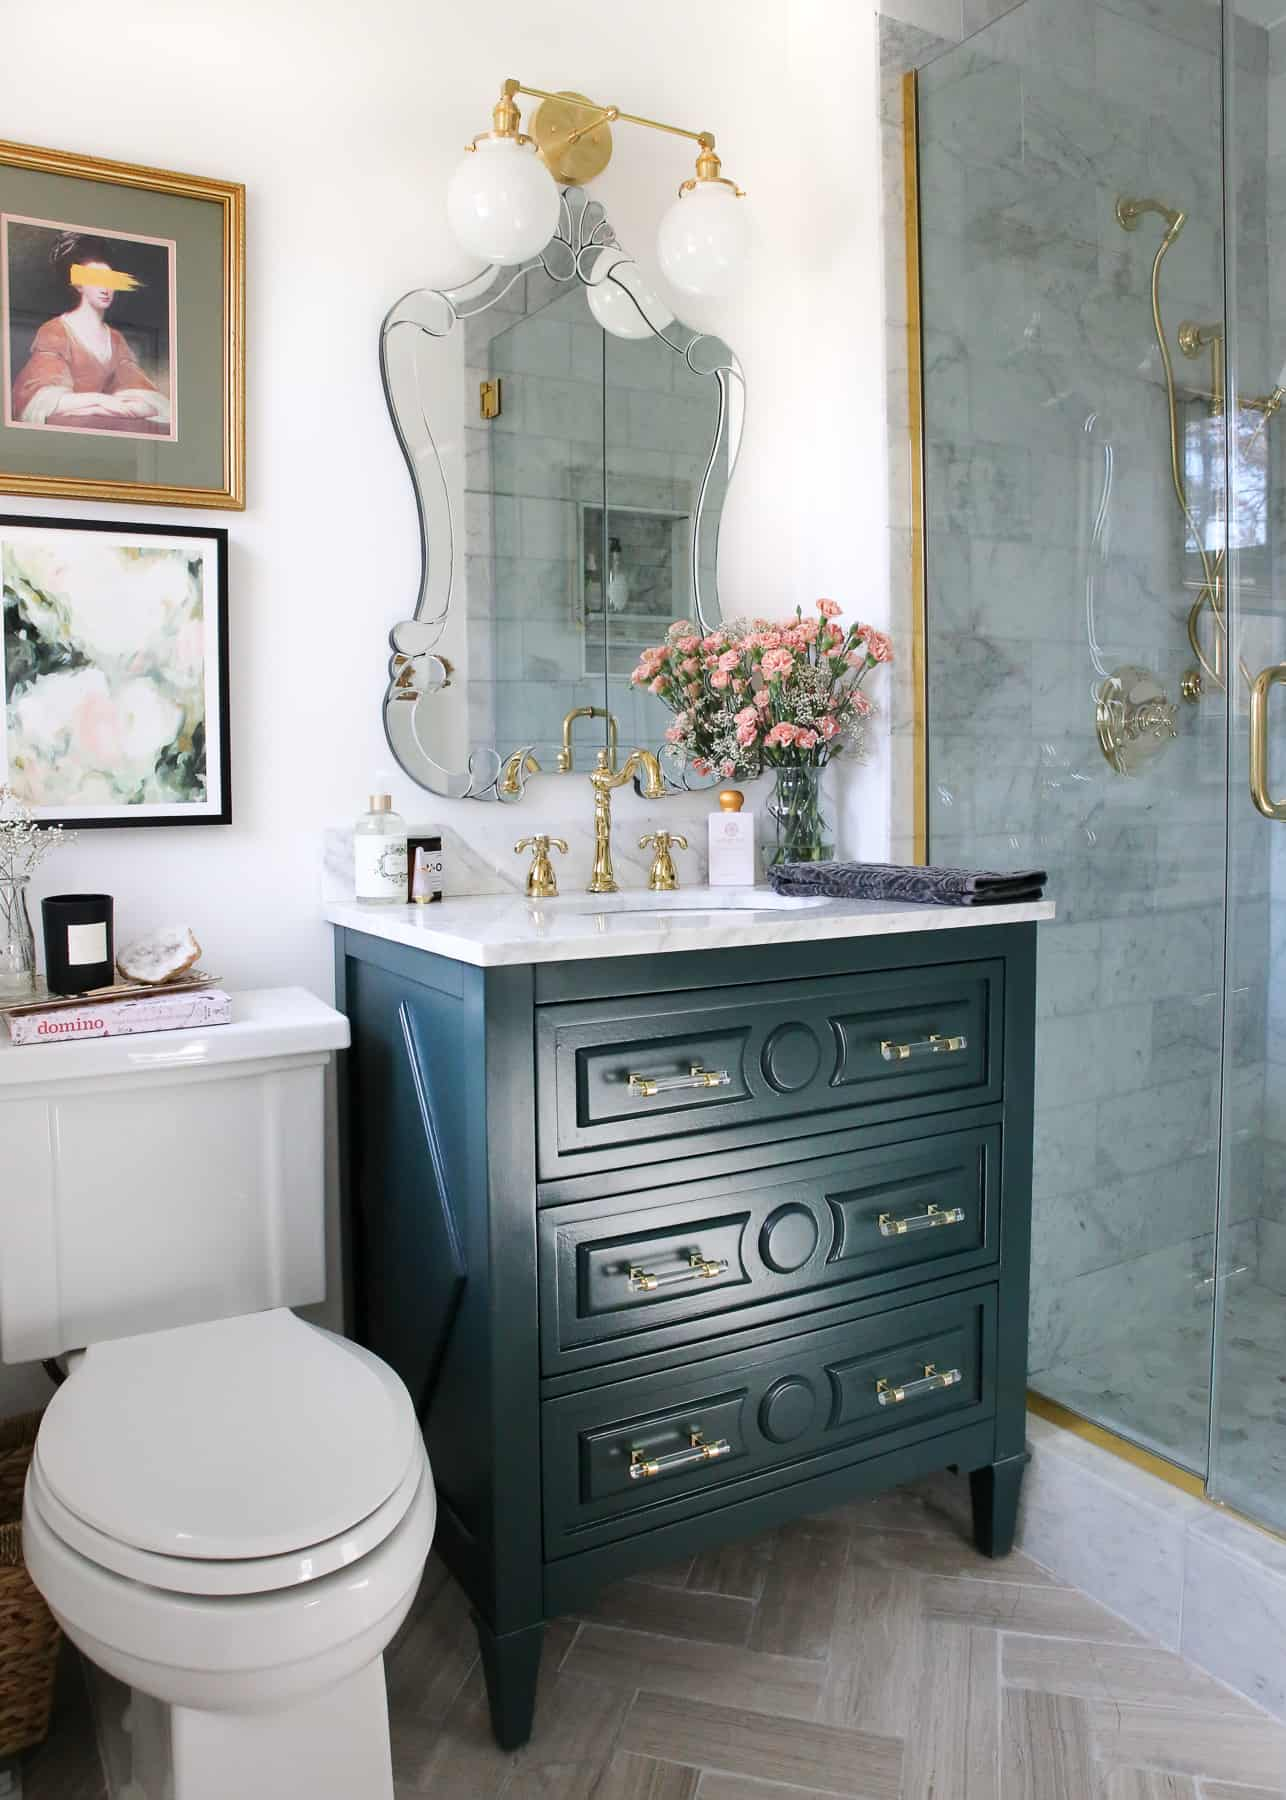 One Room Challenge, The Reveal: A Small Luxe Parisian Master Bathroom